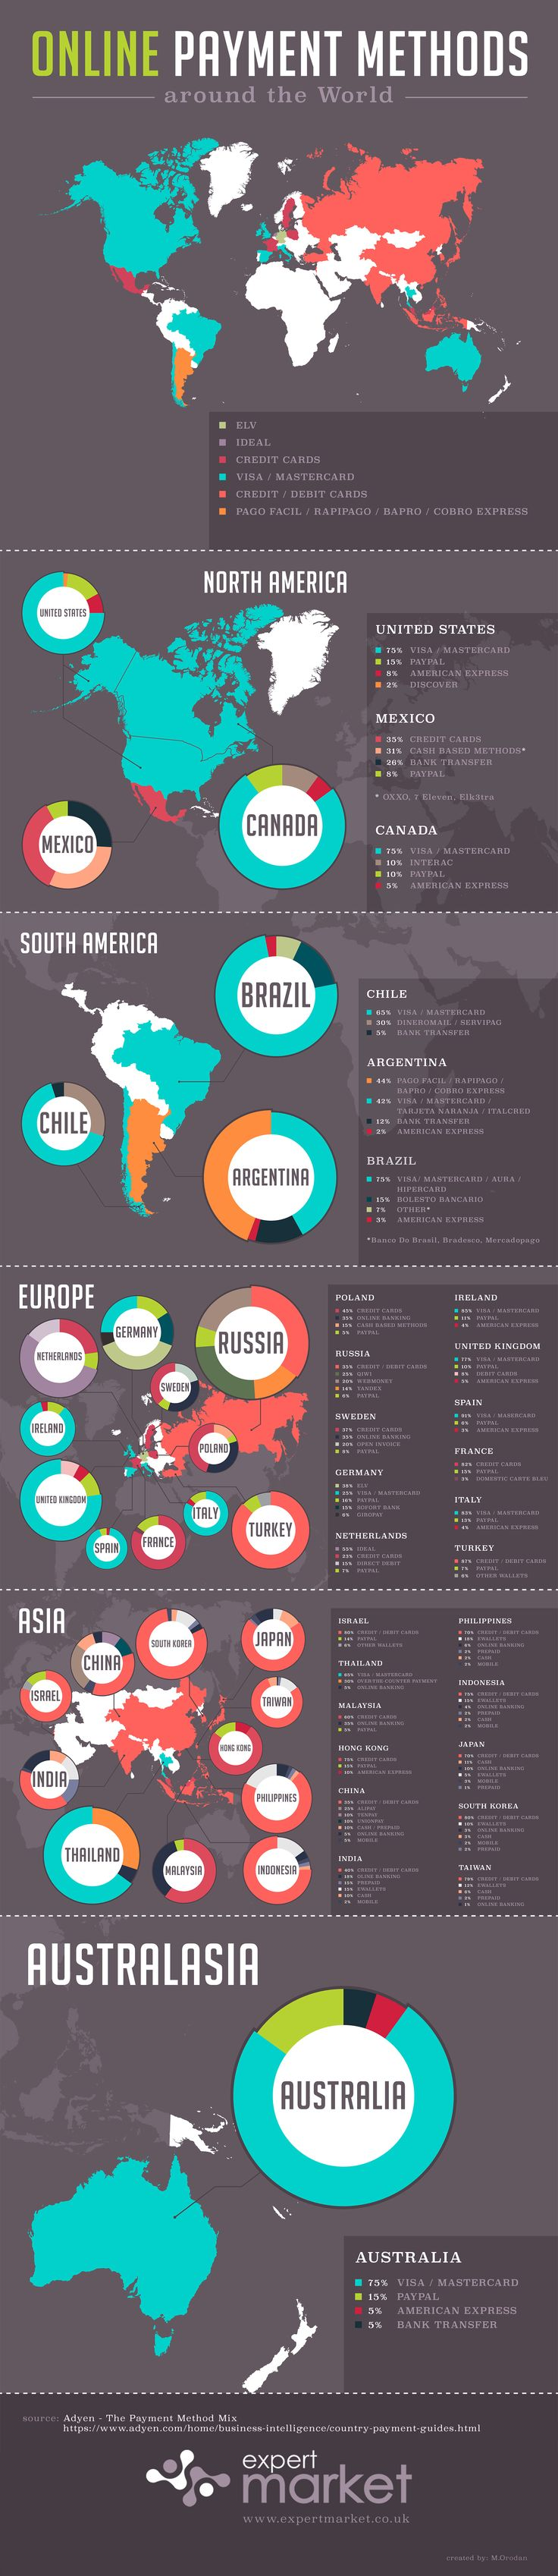 Online Payment Methods Around the World #infographic #Business #Finance #Payment